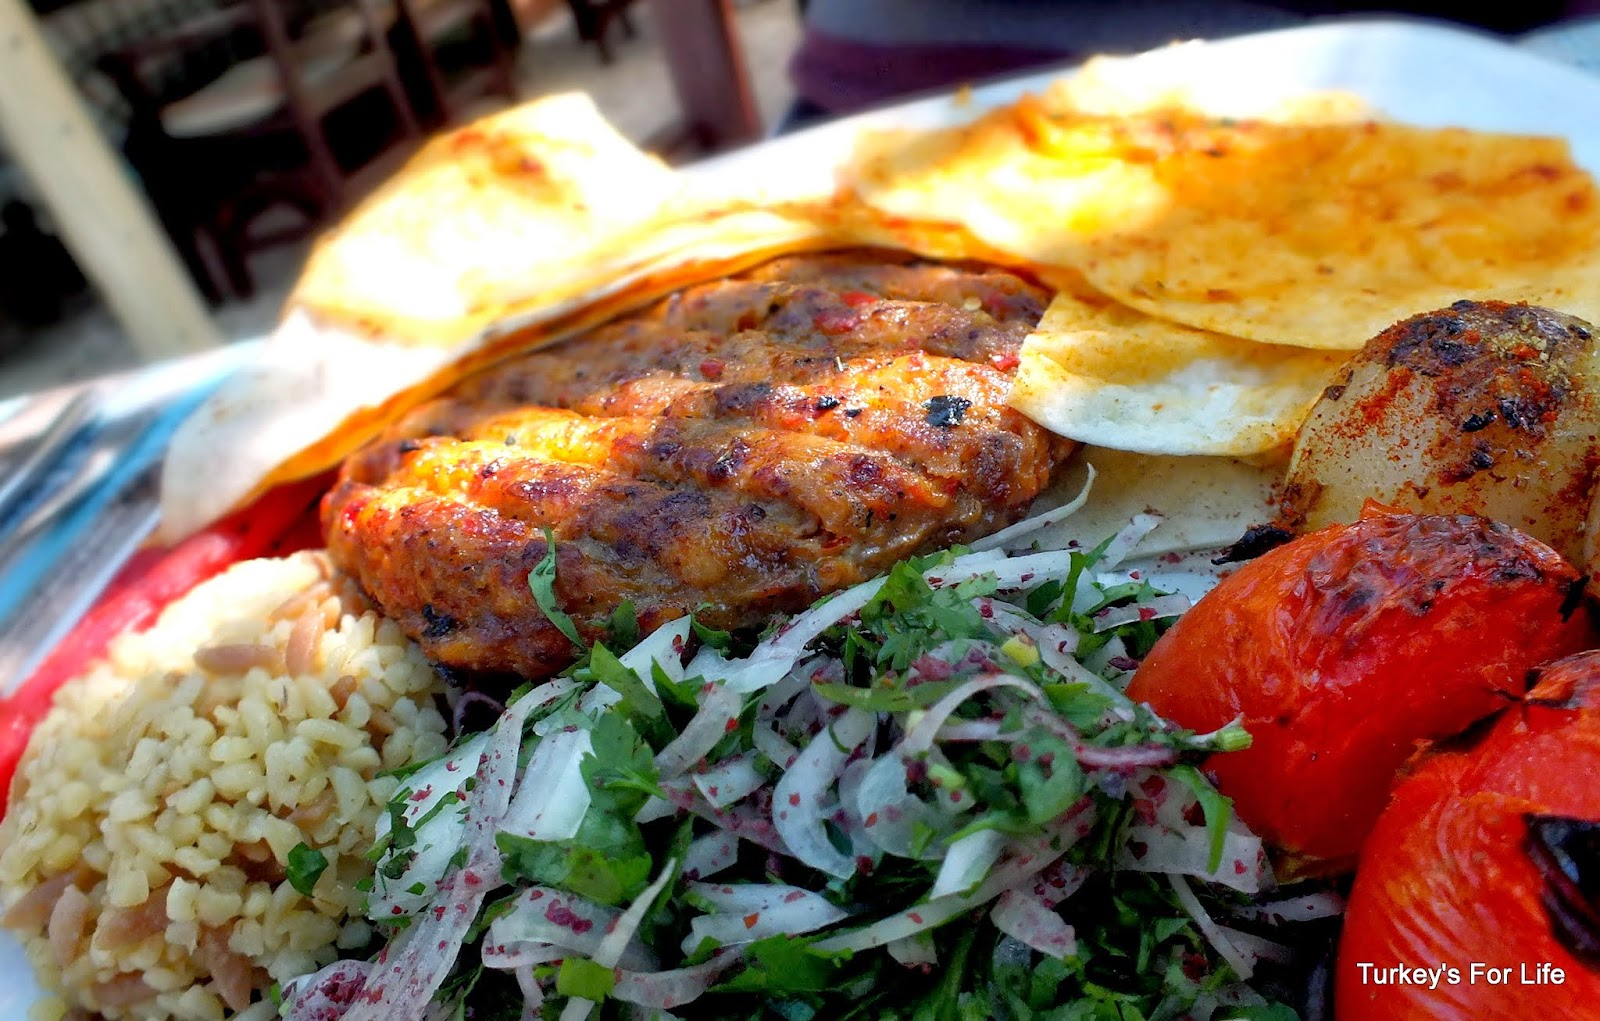 Ato pili chateaux chicken a taste of hatay in for A taste of turkish cuisine